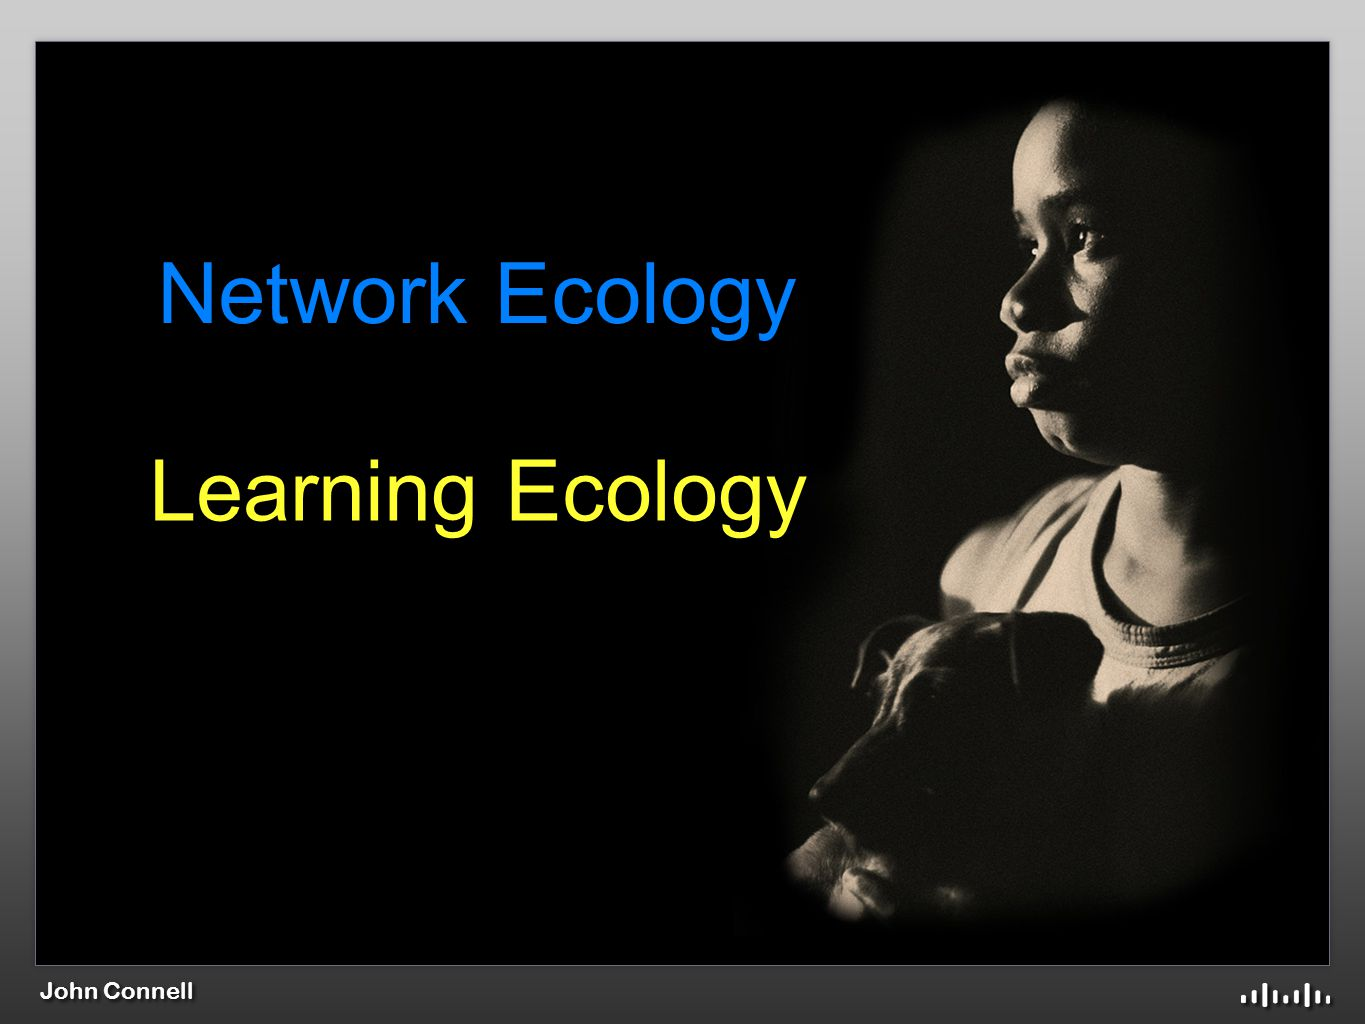 John Connell Network Ecology Learning Ecology